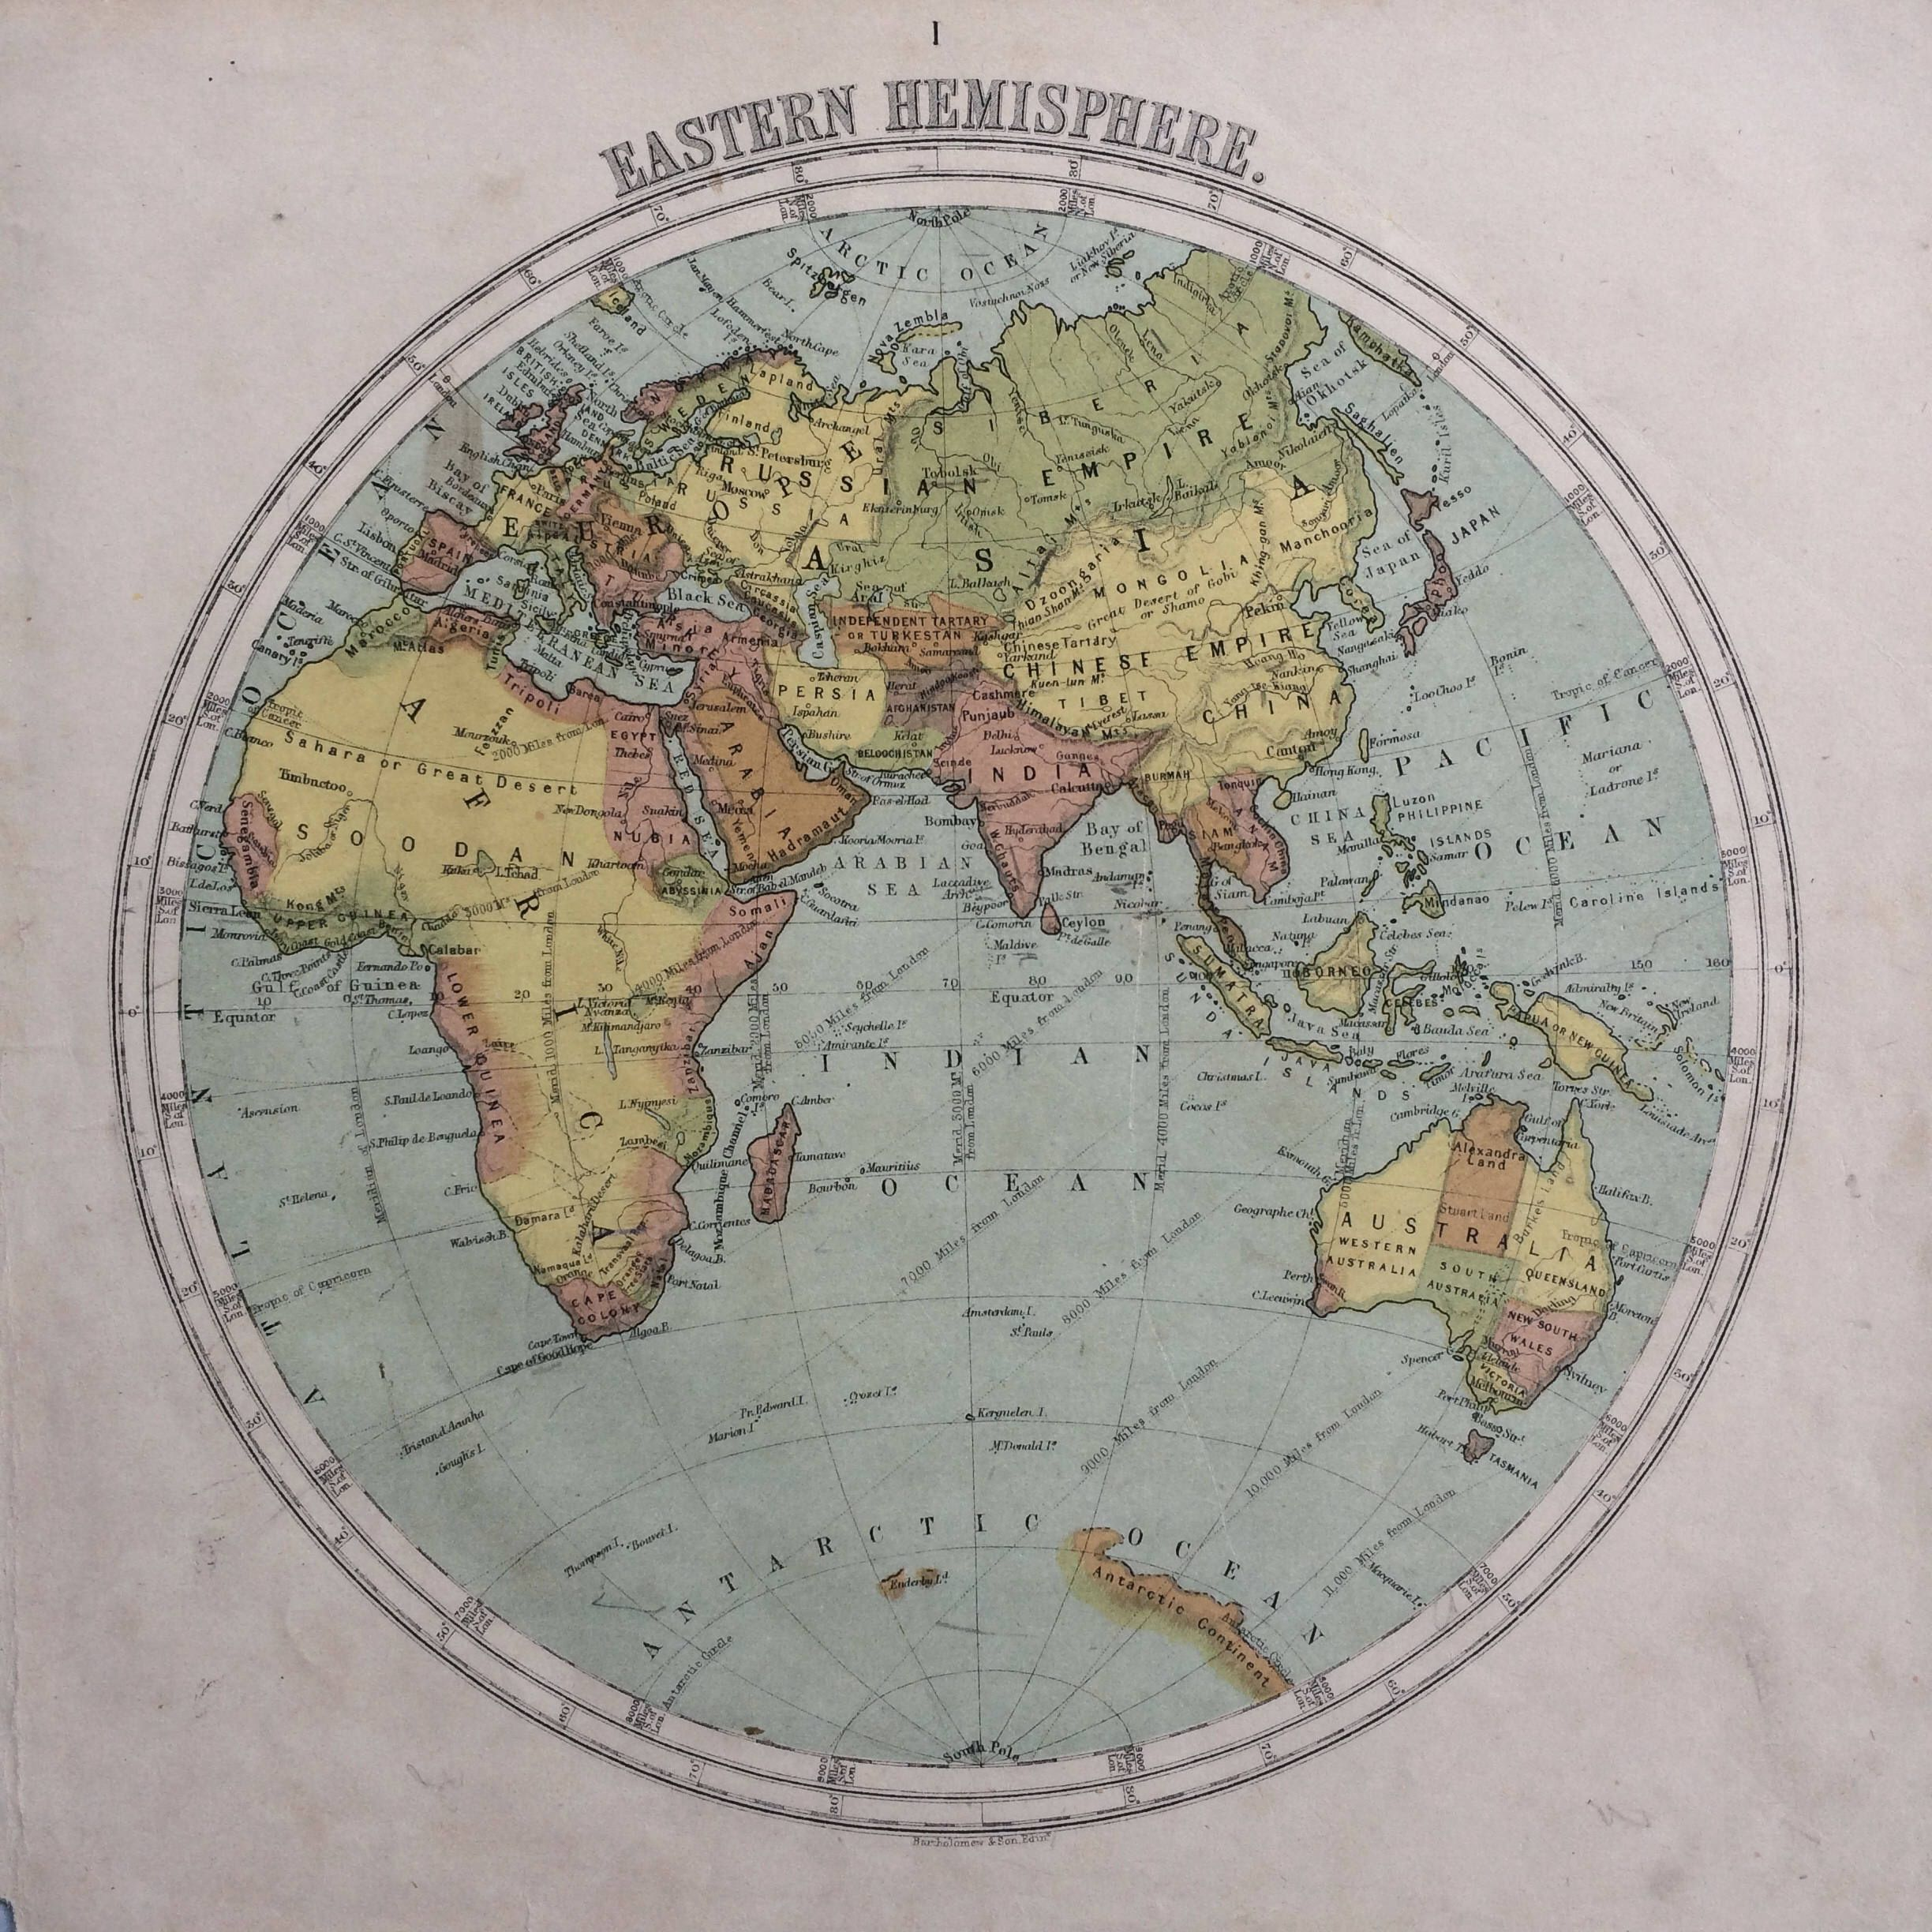 1865 eastern hemisphere original antique hand coloured engraved 1865 eastern hemisphere original antique hand coloured engraved square map nelsons atlas wall decor world map home decor by ninskaprints on etsy gumiabroncs